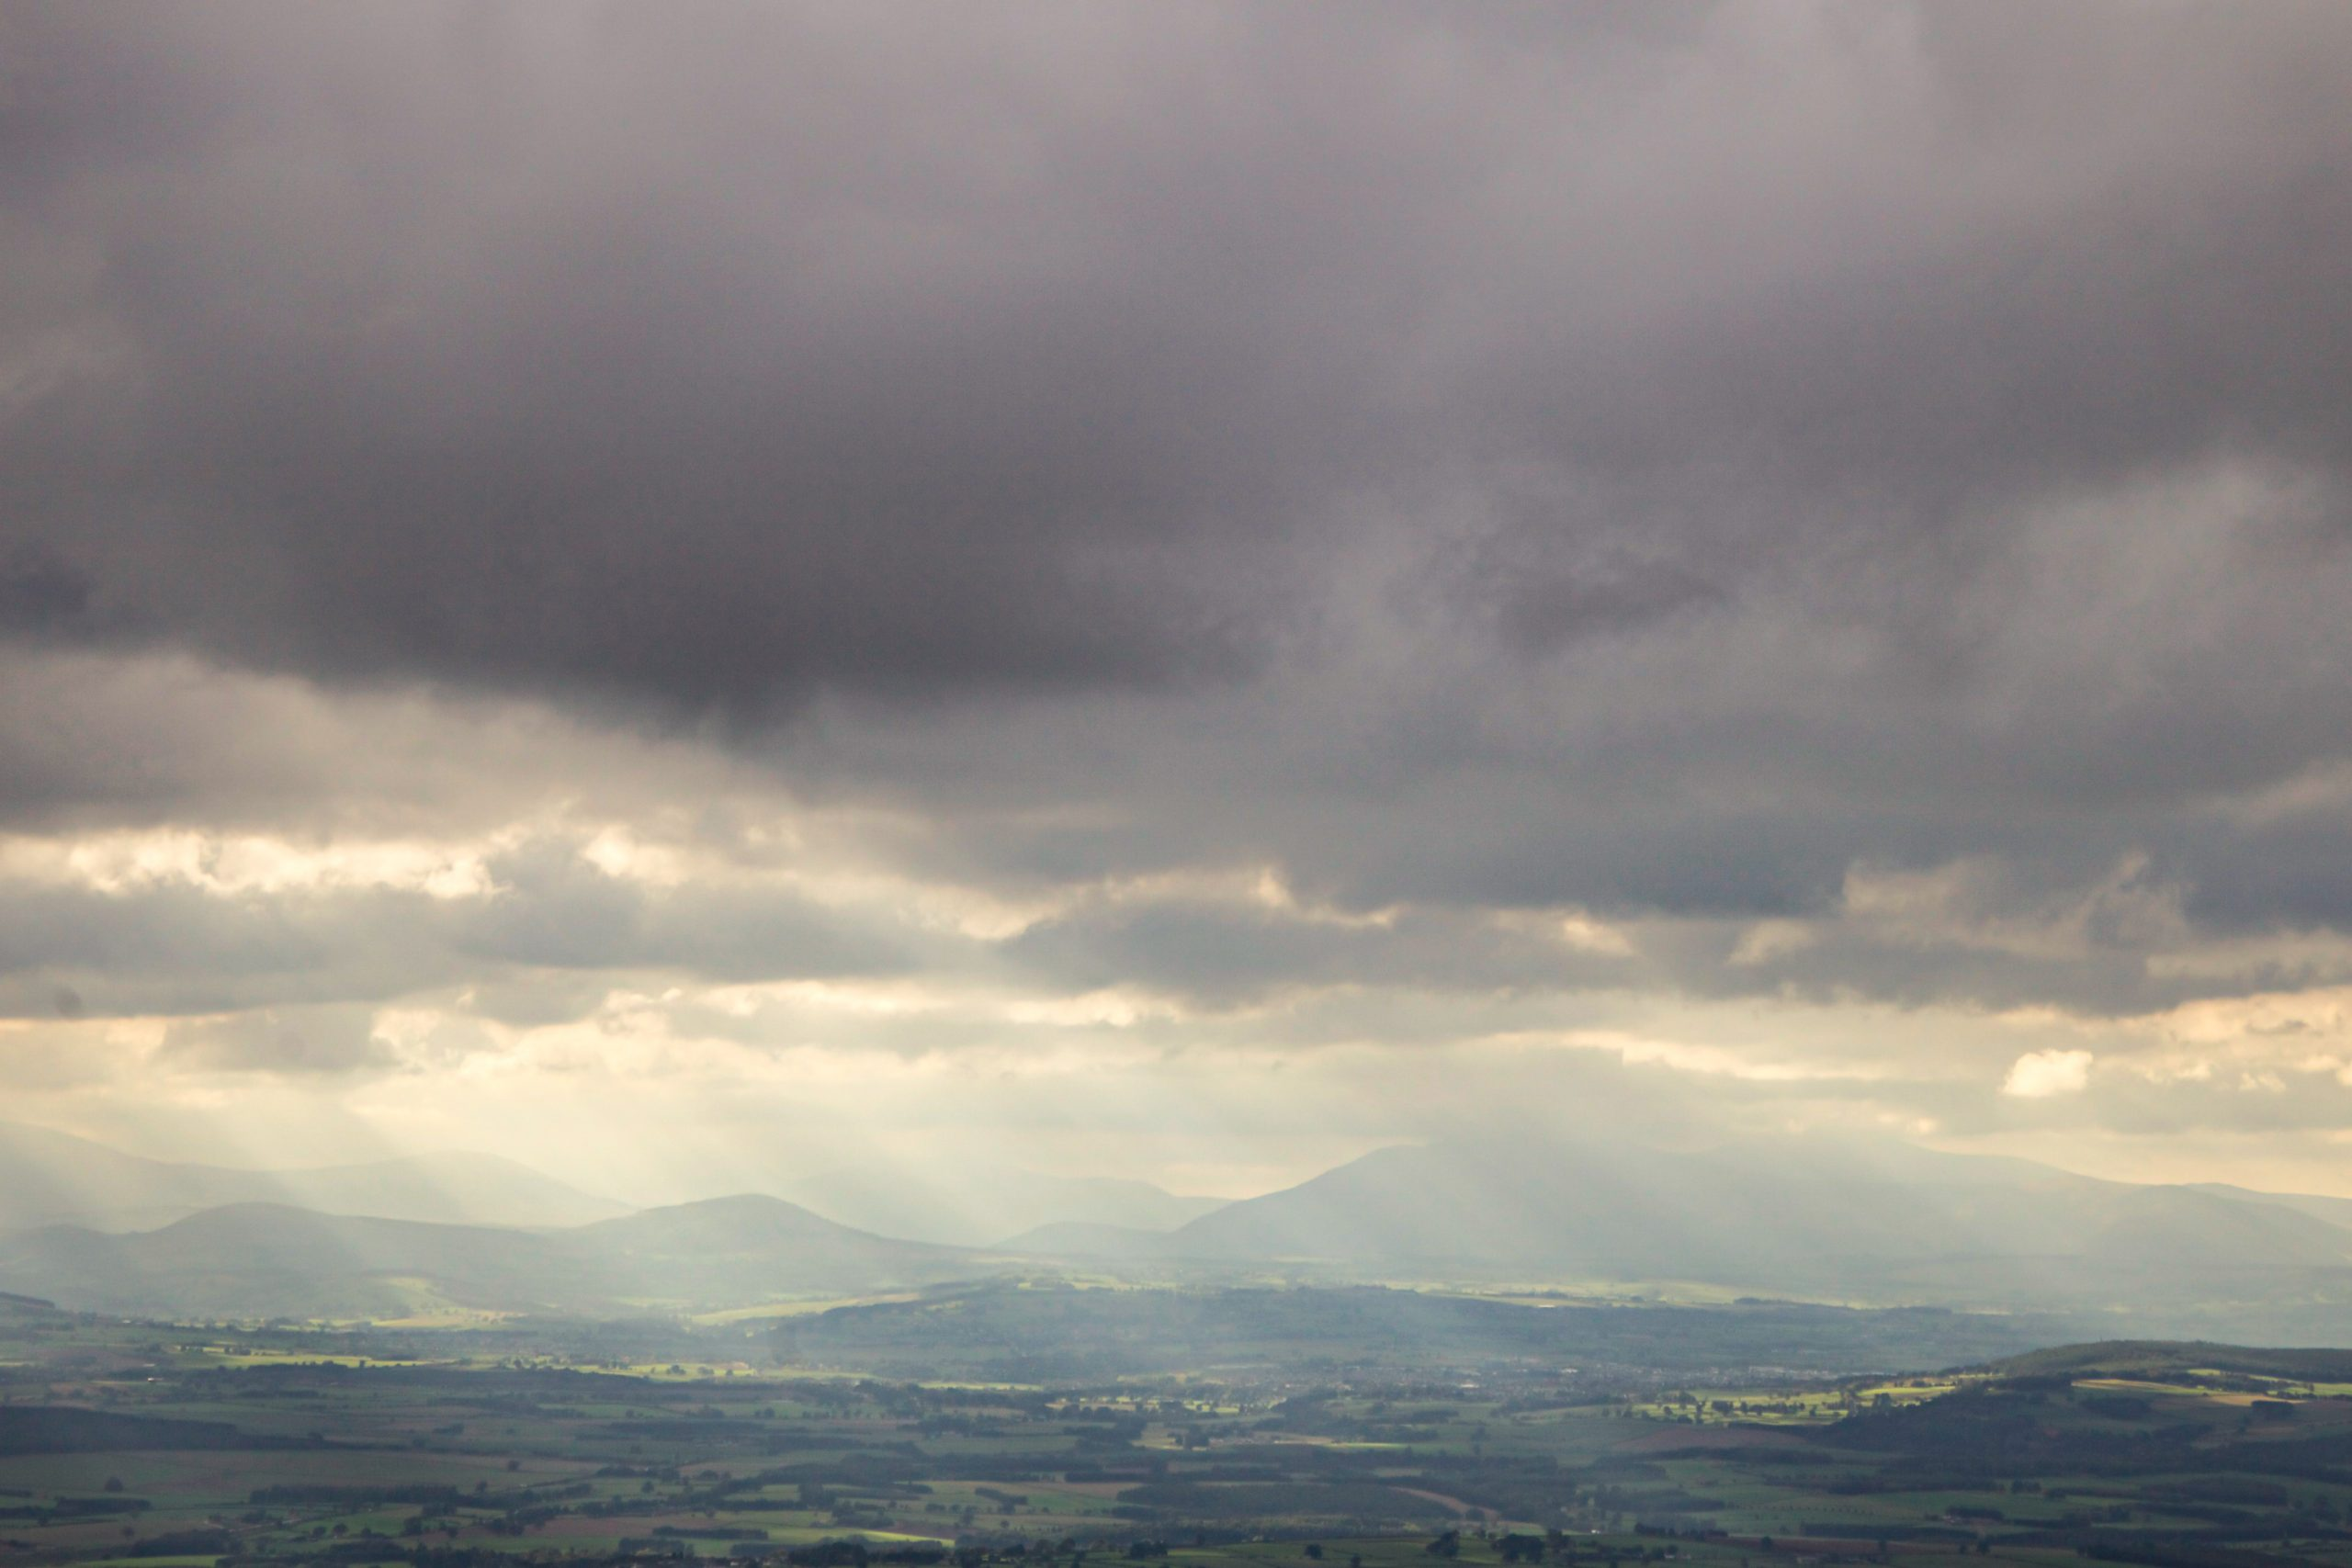 The Lake District Fells in the haze